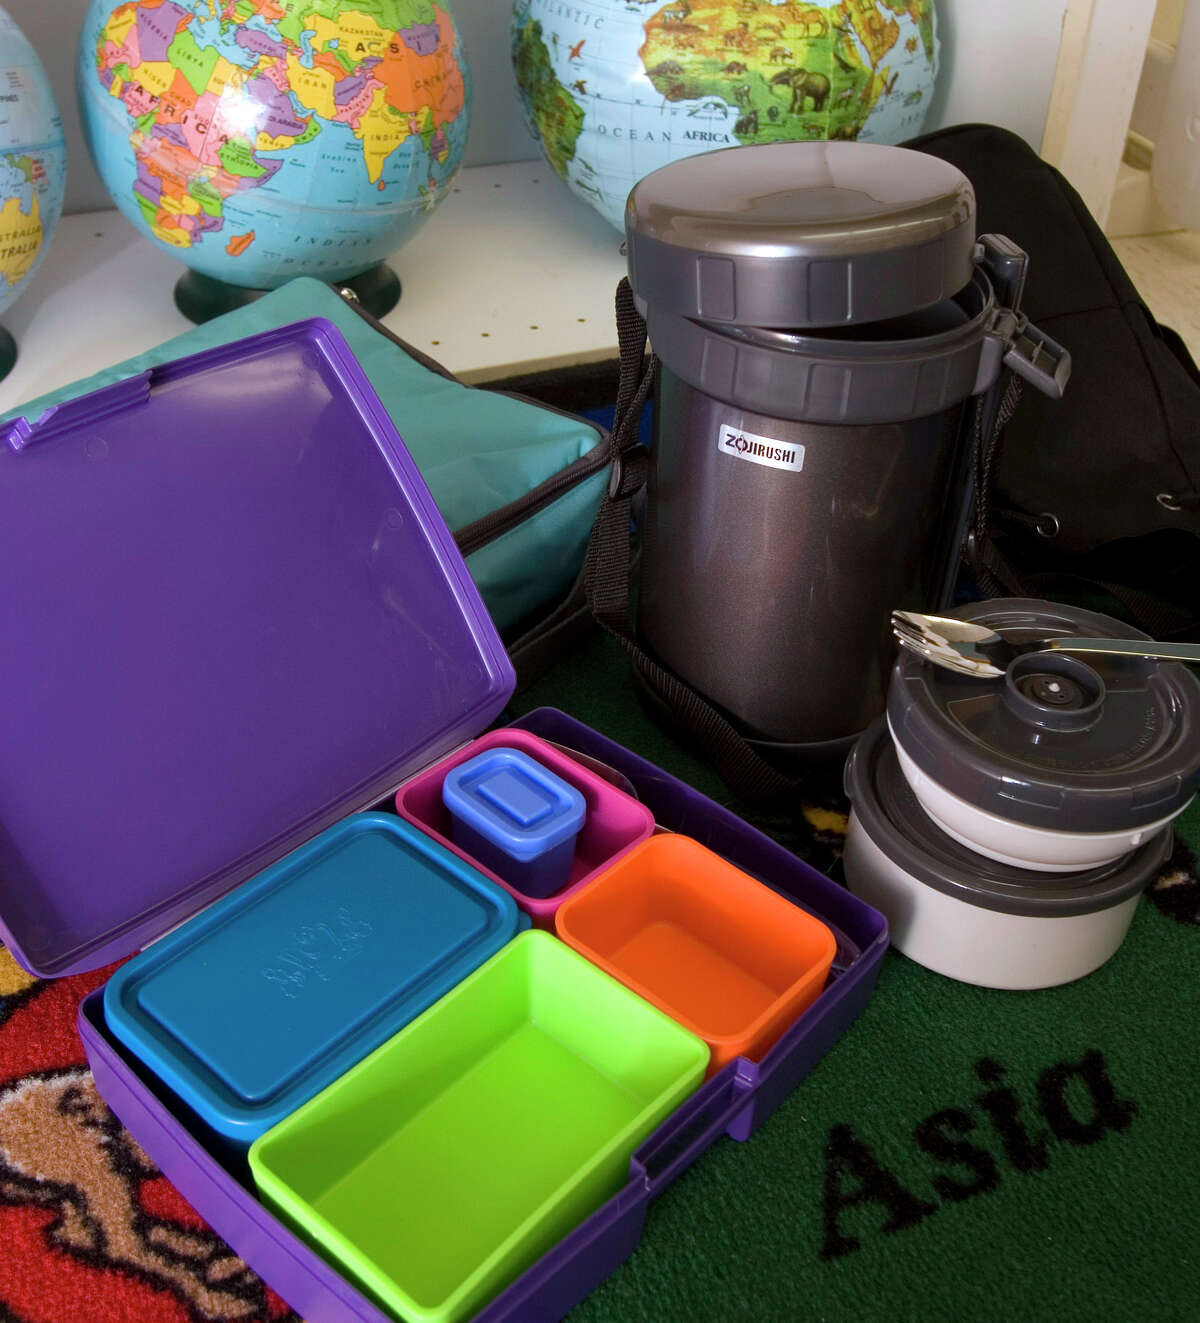 ** FOR USE WITH AP LIFESTYLES ** Bento box-style carriers, shown in this August 2, 2007 photo, are perfect if you like to bring lots of options for lunch. The interior containers can carry hot, cold and liquid foods and many include eating utensils. (AP Photo/Larry Crowe)